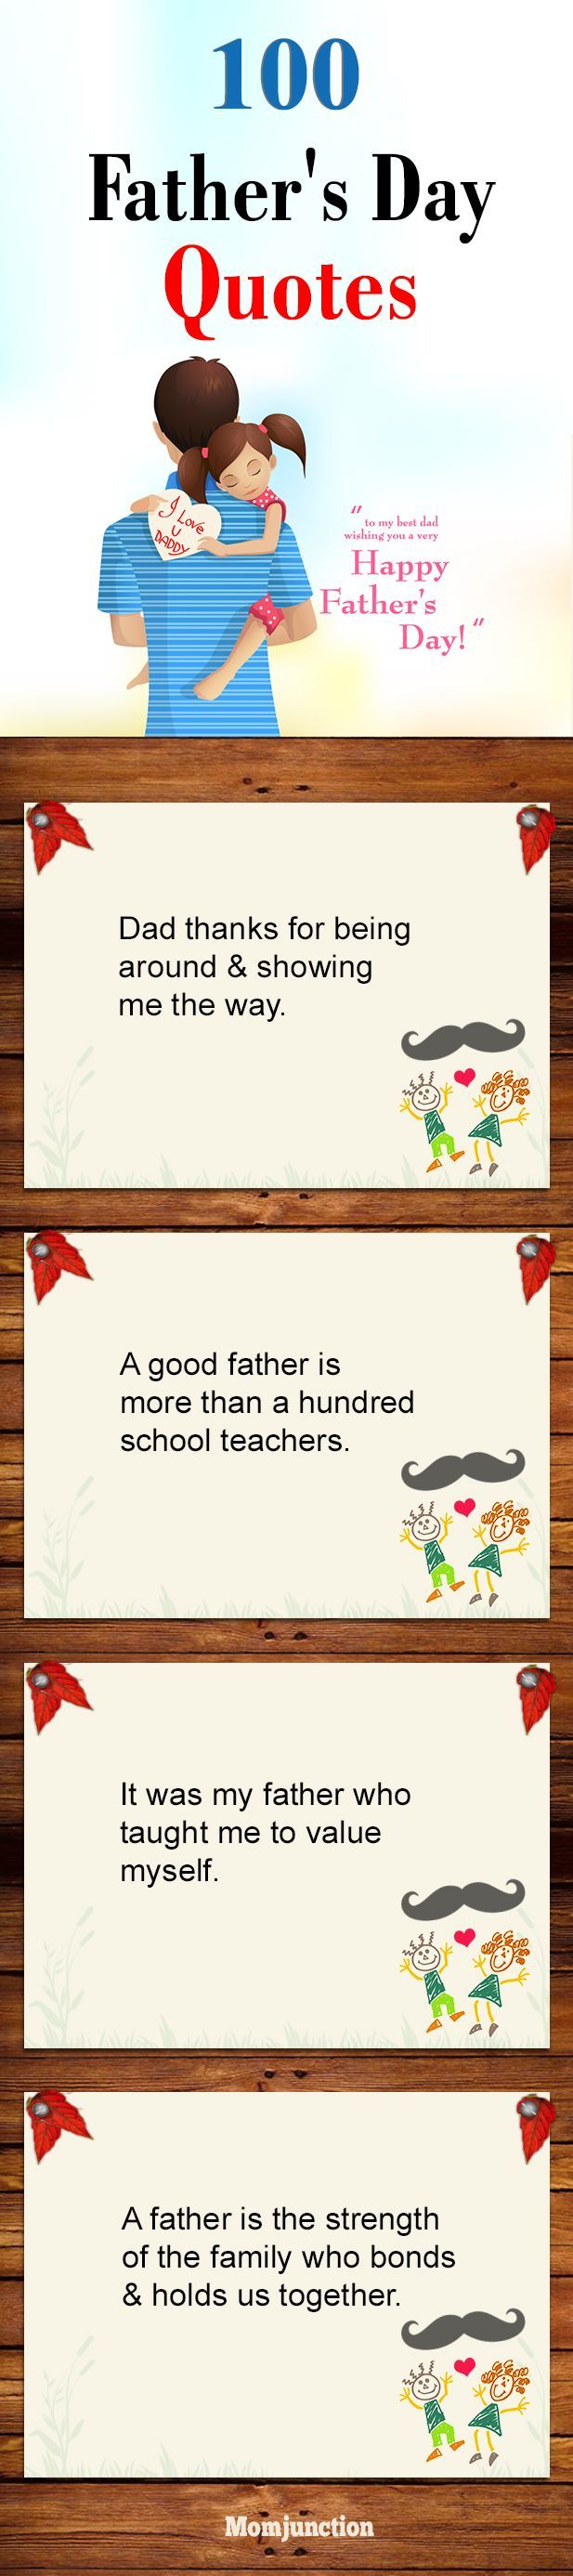 Fathers Day Quotes: Read on to find our Father's Day quotes compilation, all t...